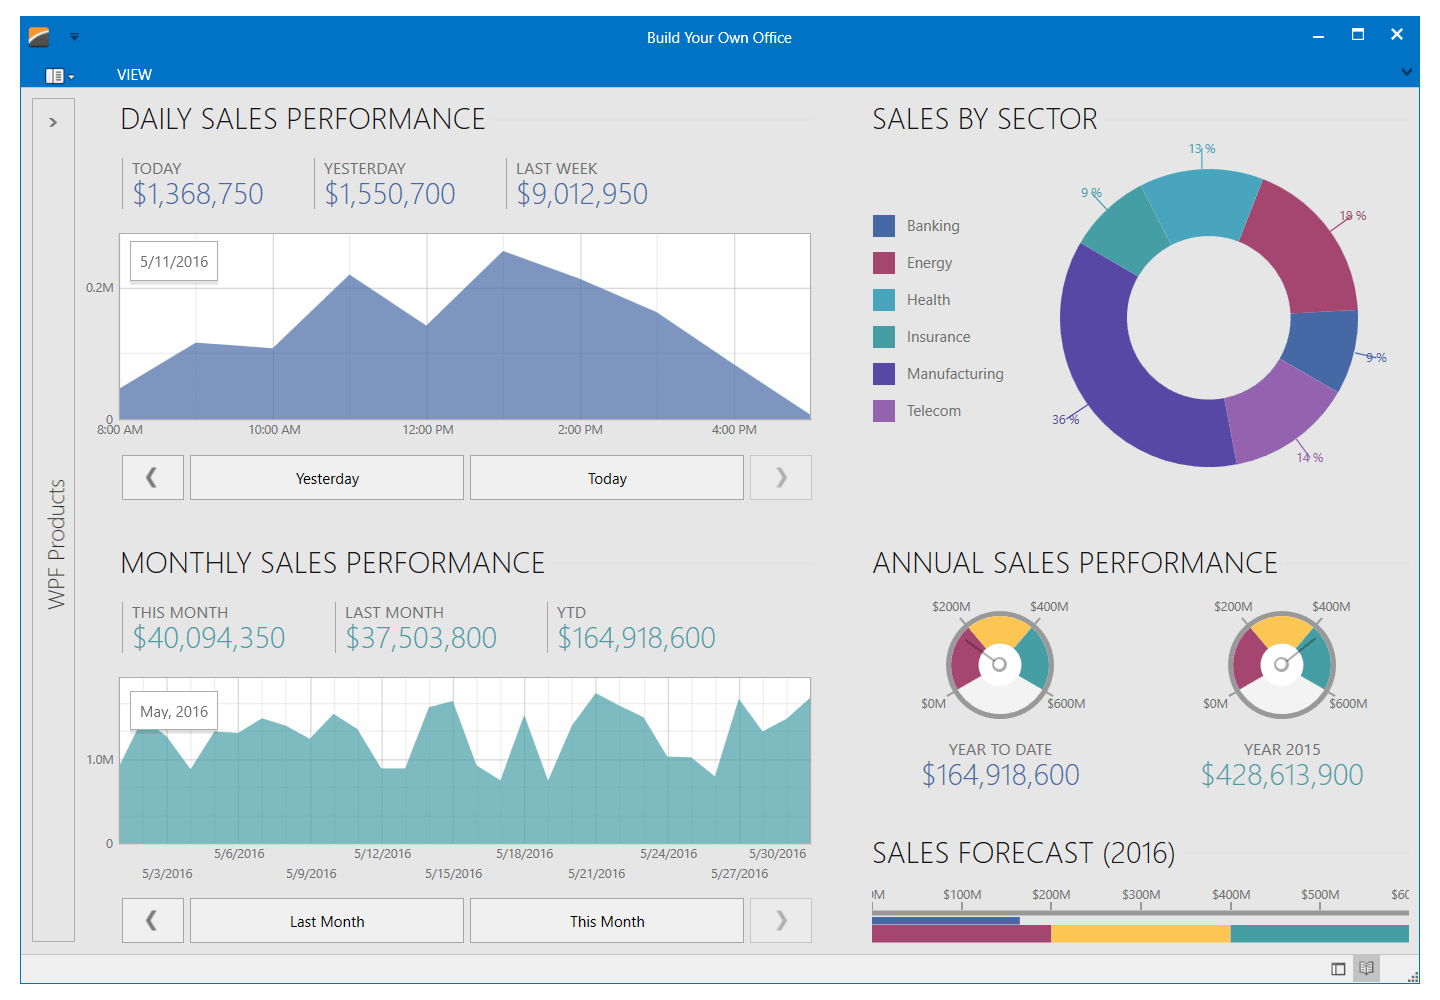 WPF Sales Performance App with Charting and Gauges